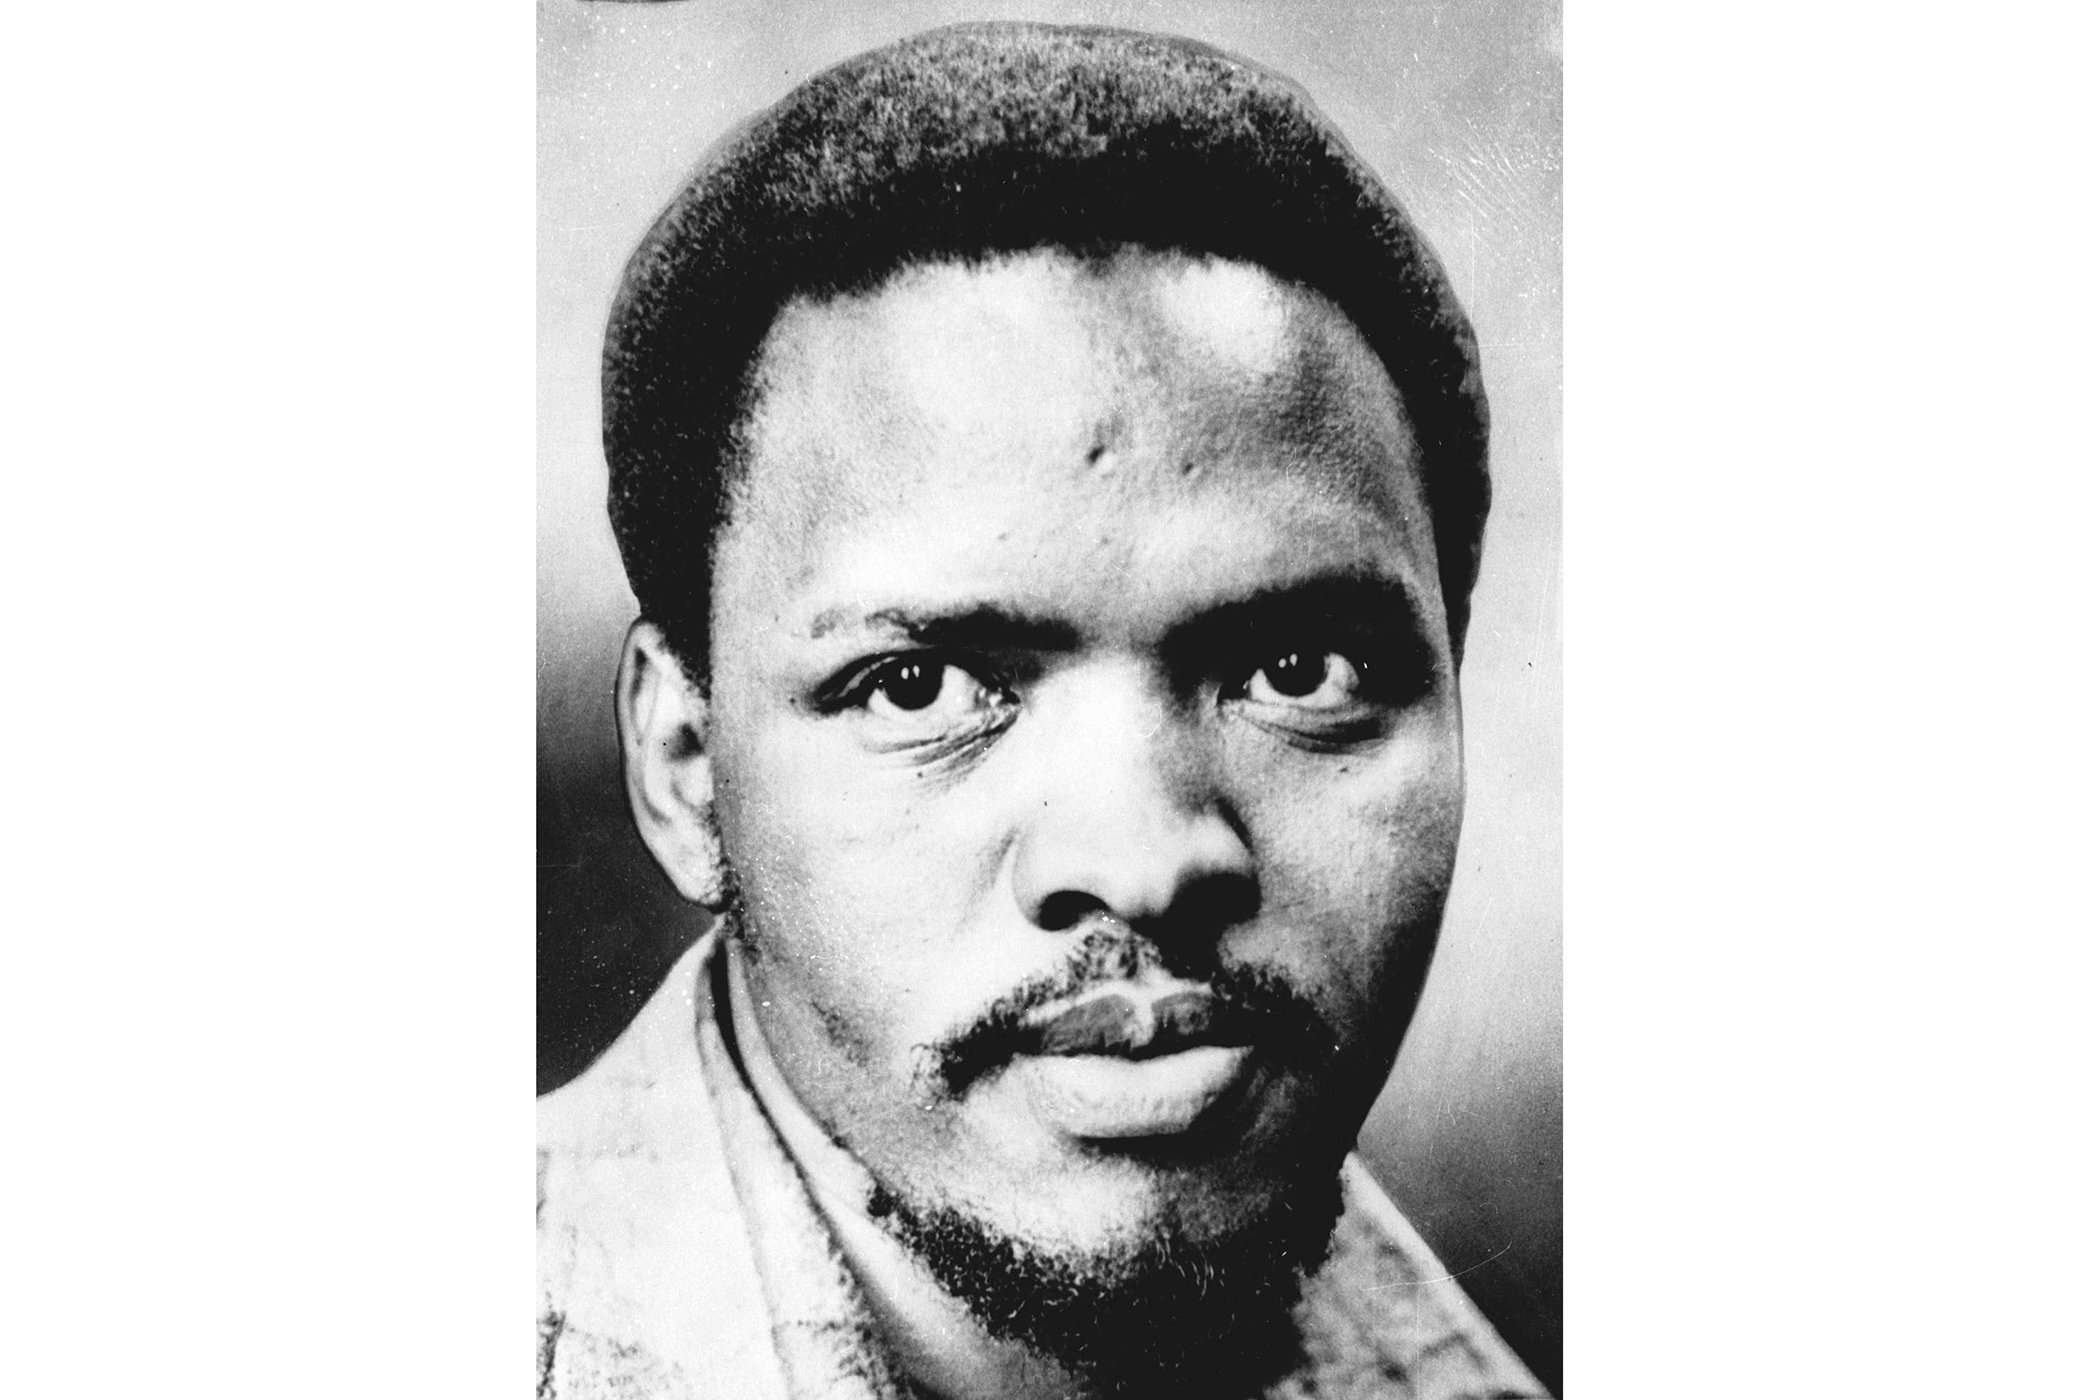 Steve-Biko-South-Africa-Freedom-Fighters.jpg